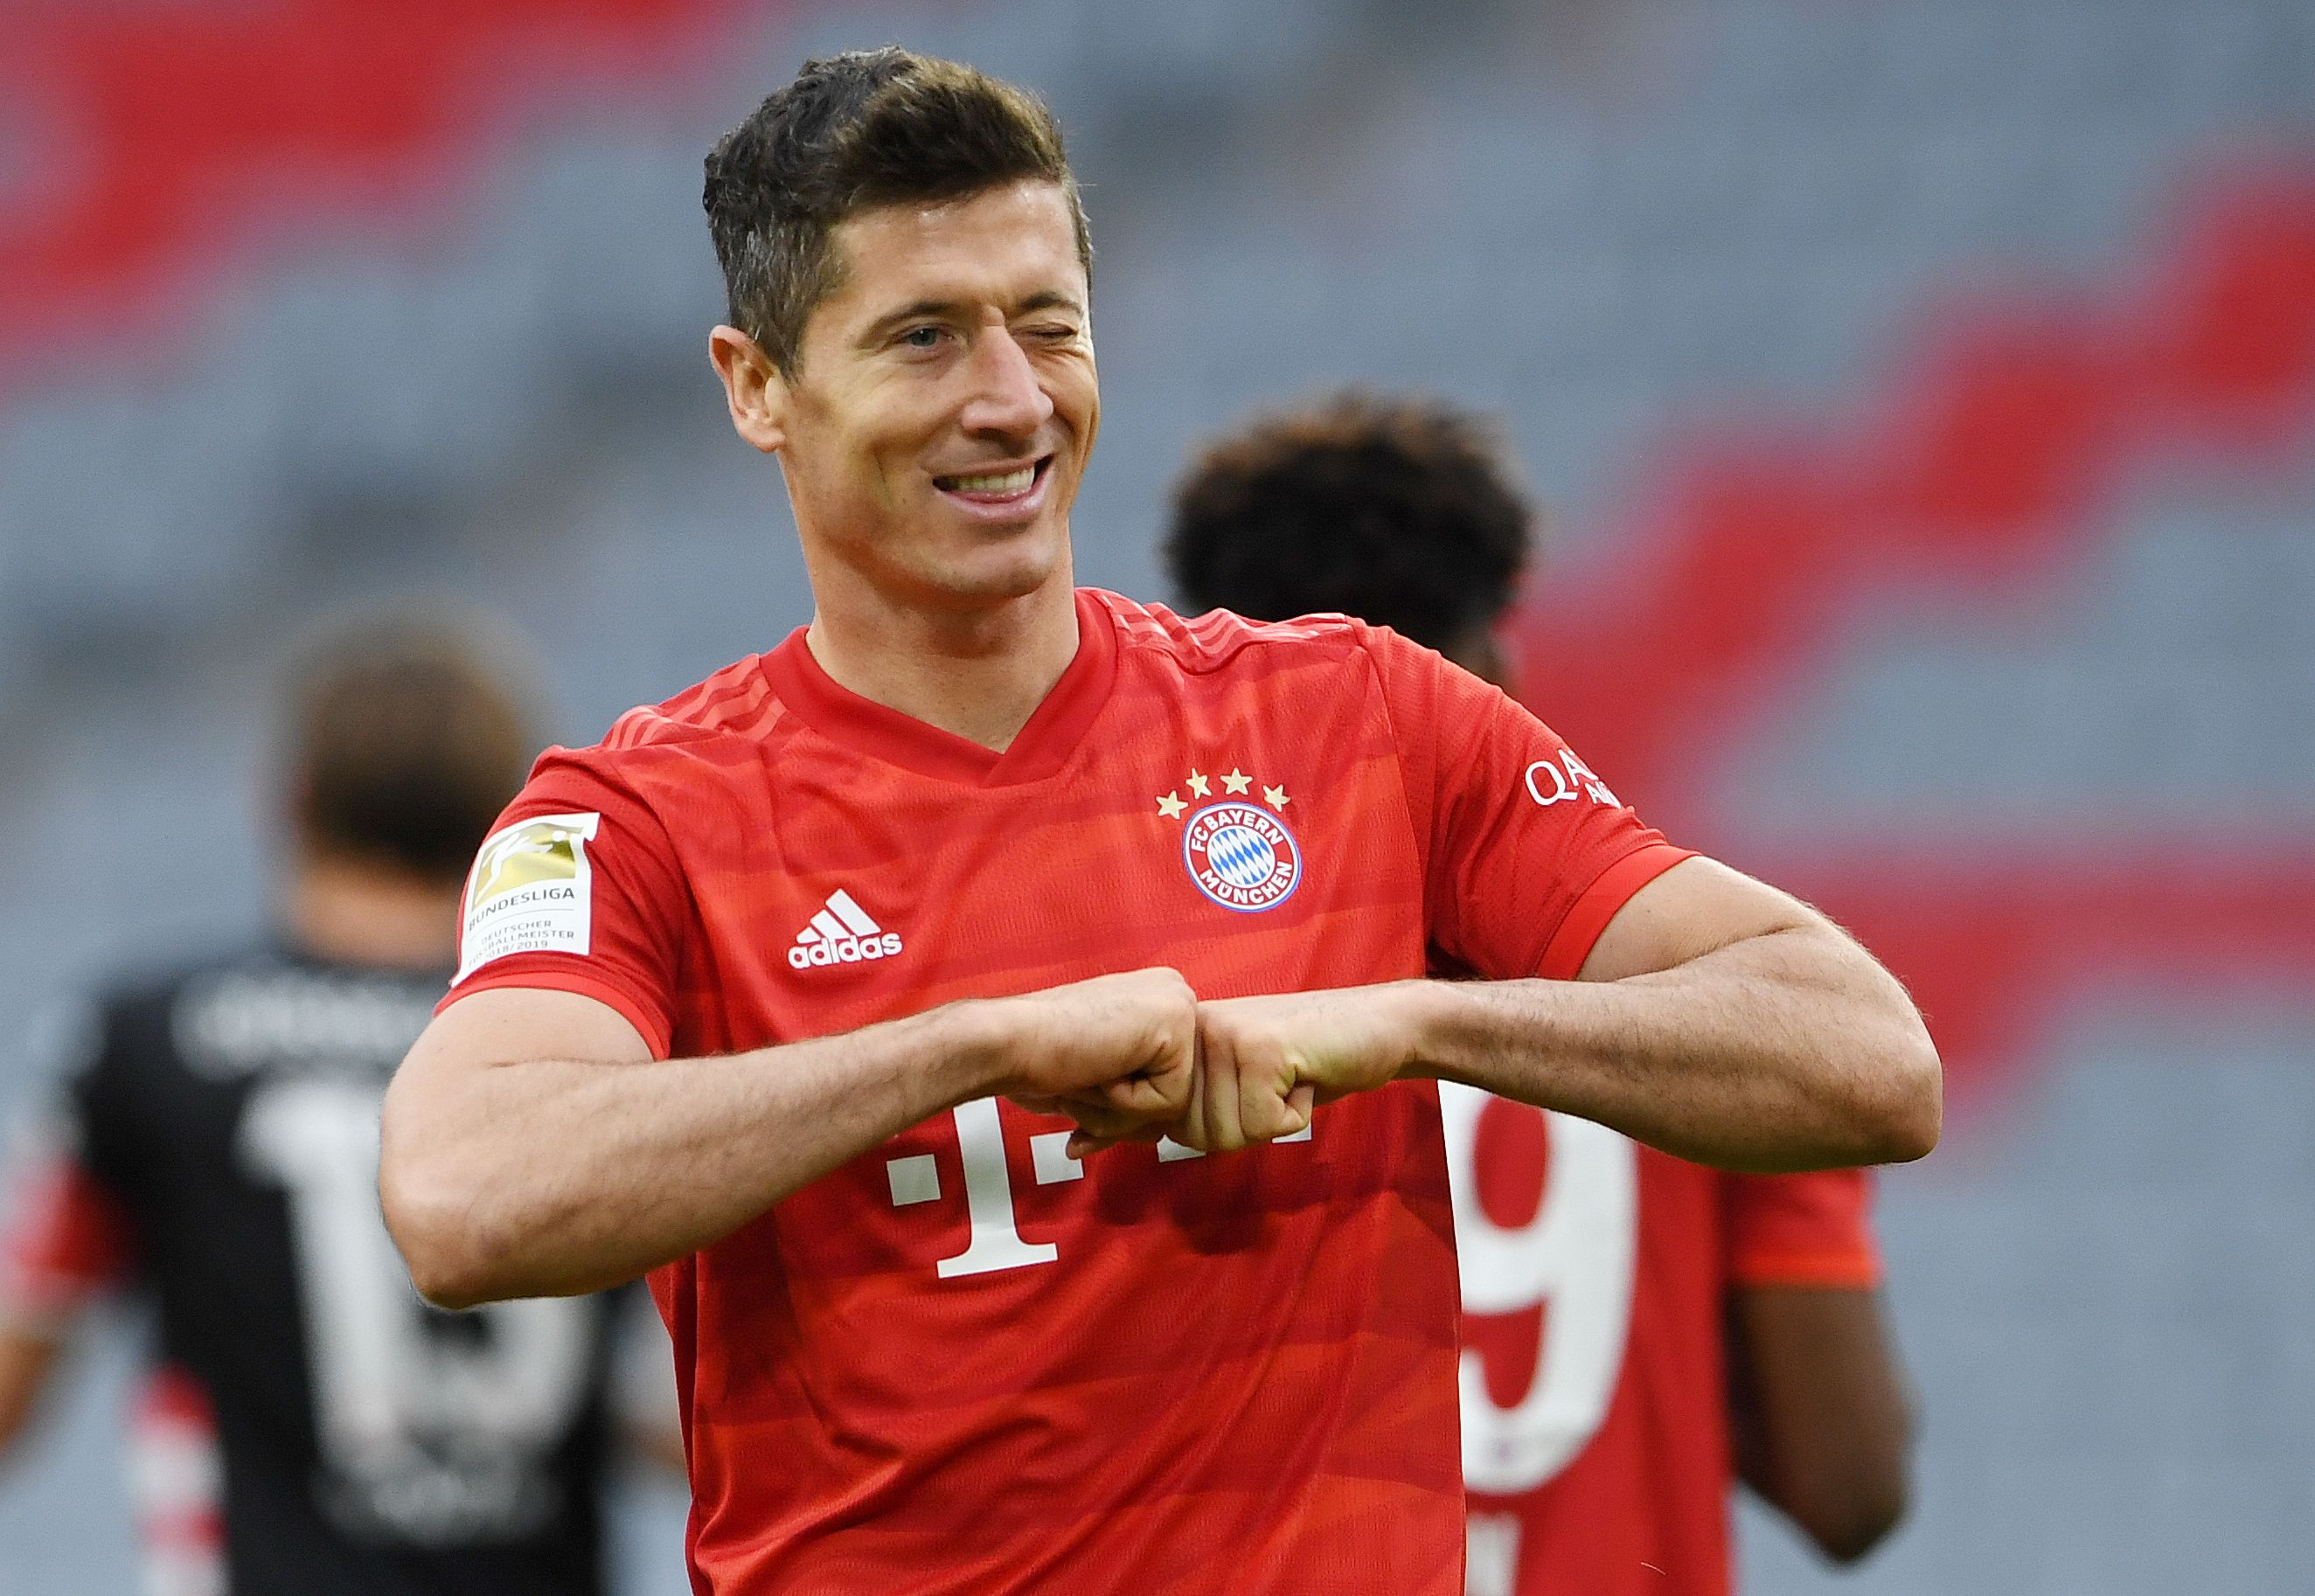 Bayern Munich's Robert Lewandowski celebrates scoring their fourth goal, as play resumes behind closed doors following the outbreak of the coronavirus disease (COVID-19) during the Bundesliga match between Bayern Munich and Fortuna Dusseldorf, at Allianz Arena, Munich, in Germany, on May 30, 2020. Photo: Christof Stache/Pool via Reuters